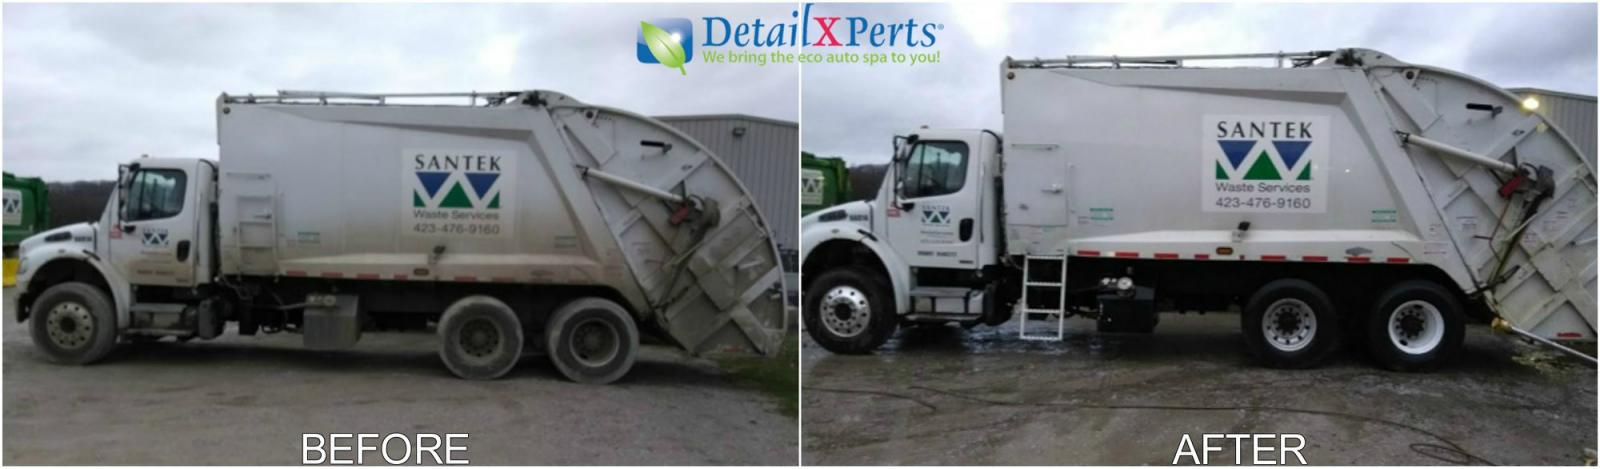 Best Truck Wash in Chattanooga by DetailXPerts